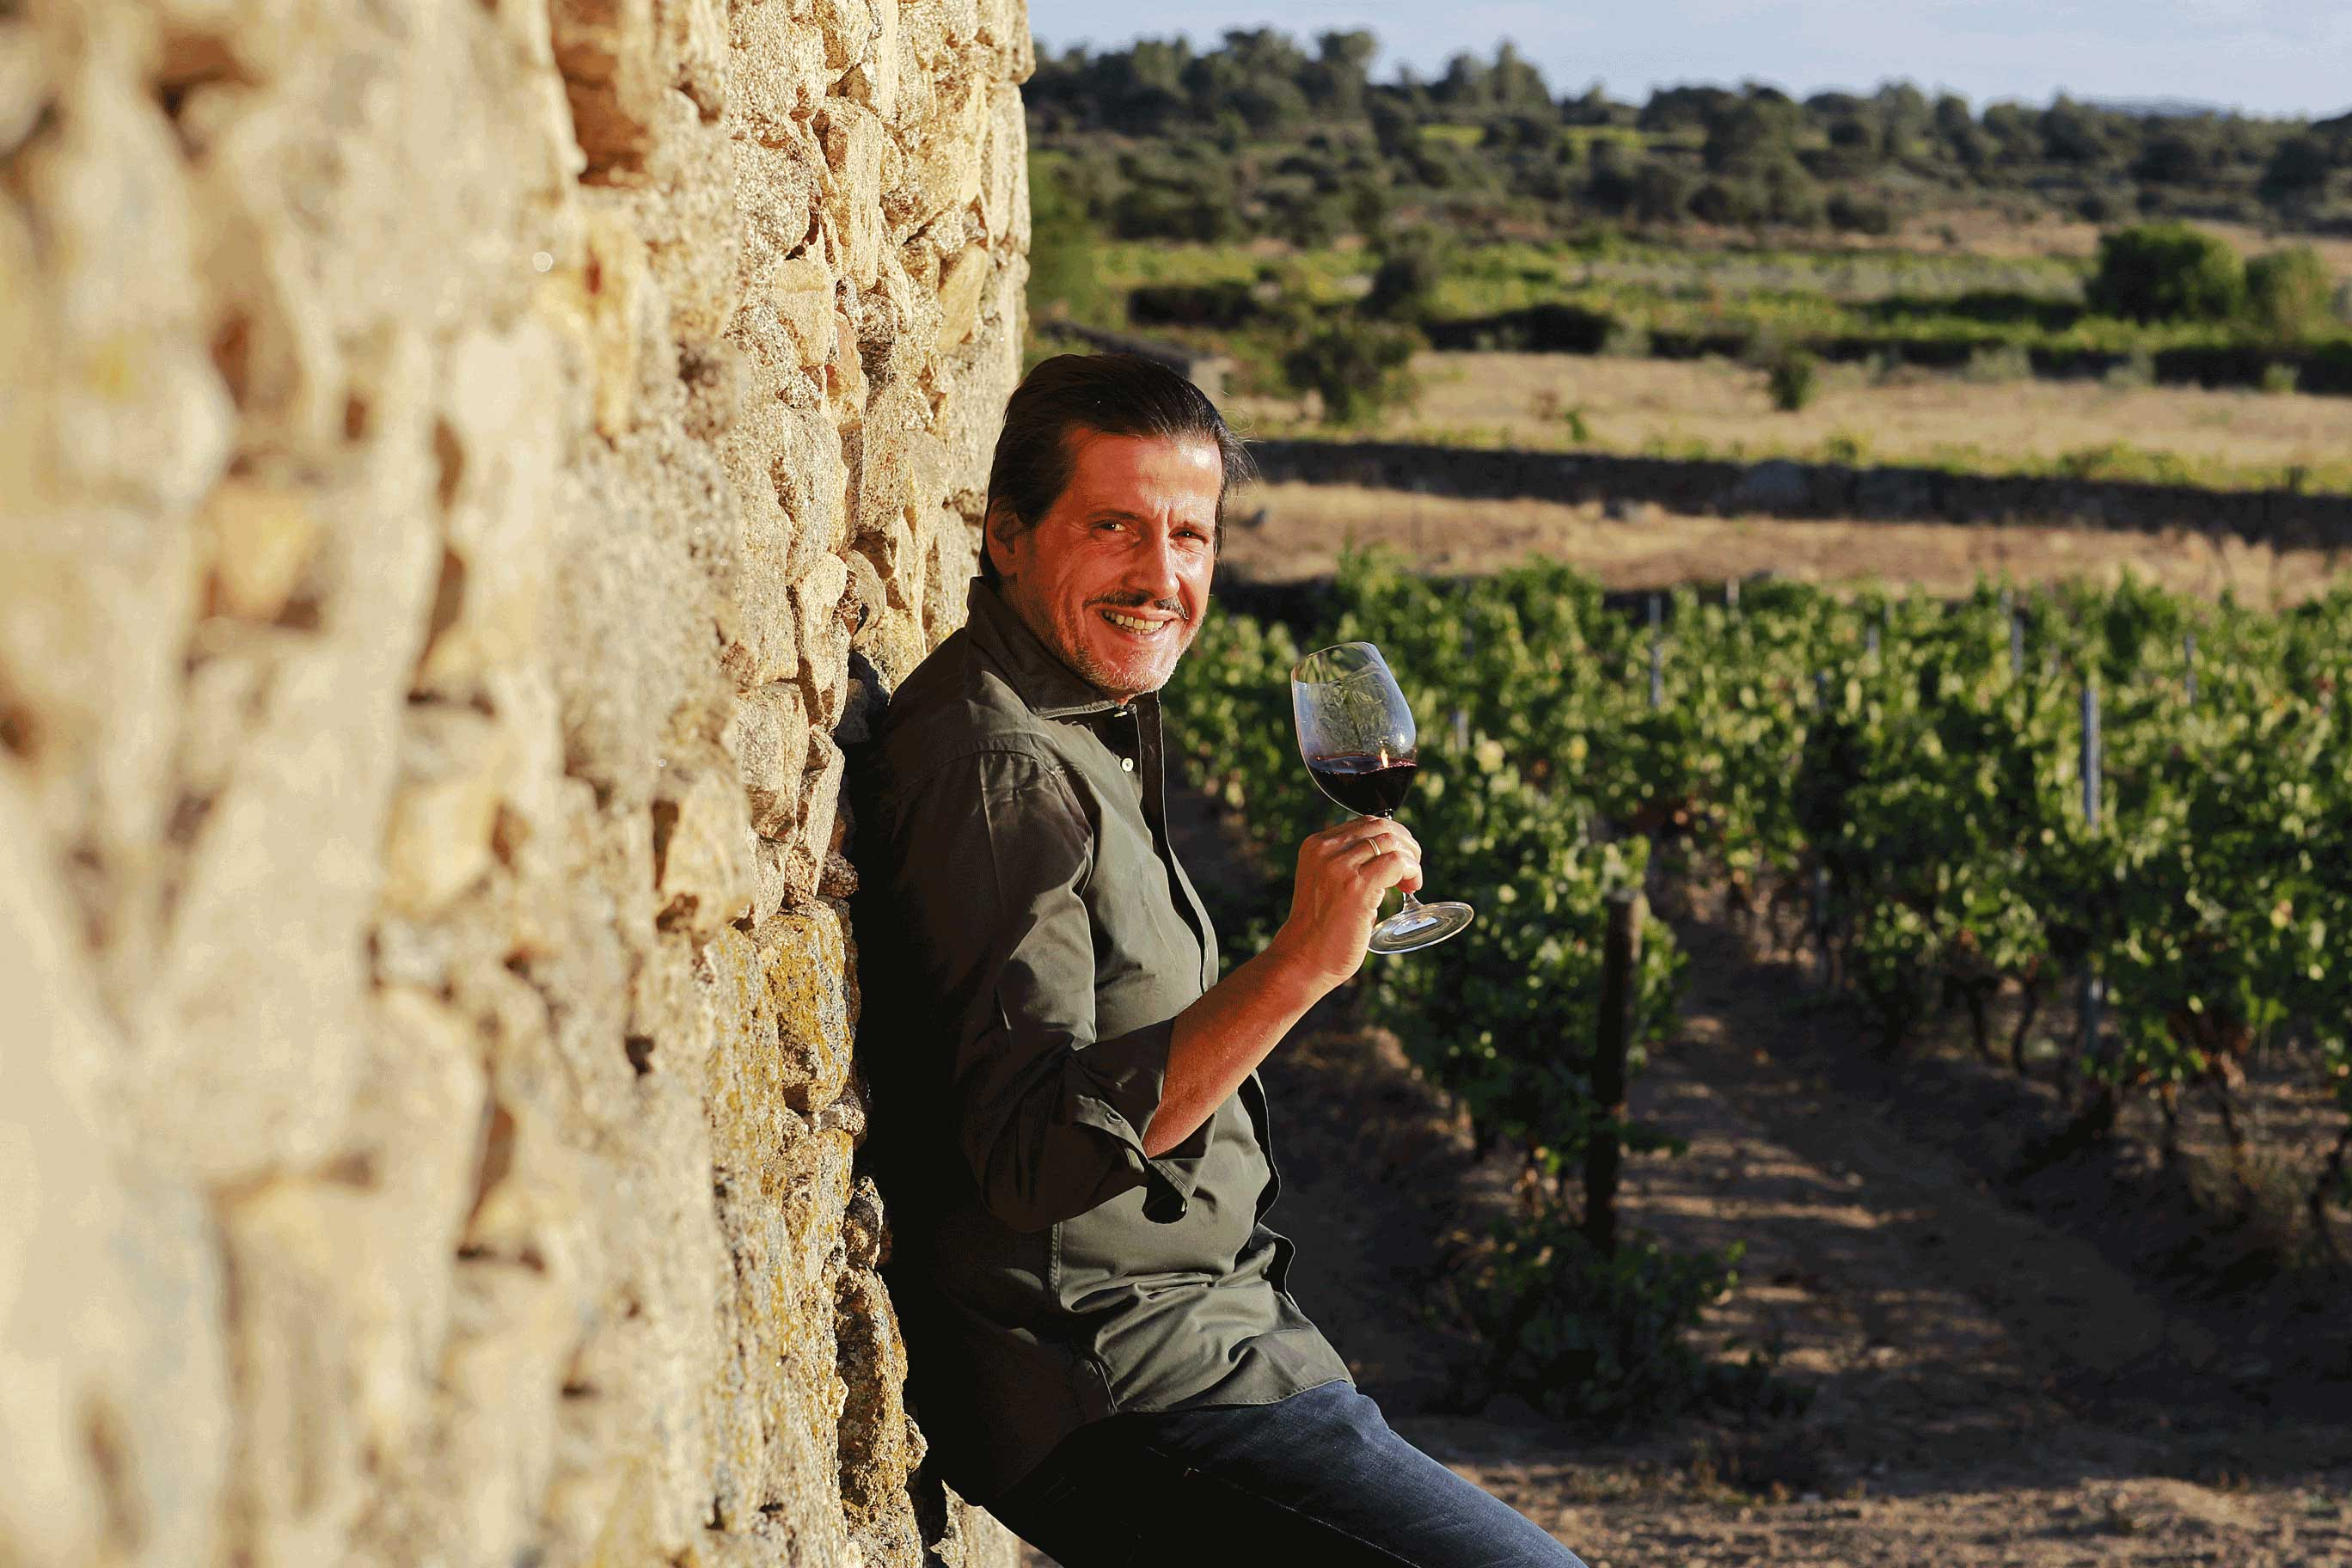 Rui Madeira: A leading winemaker in the Douro Valley and Northern Portugal